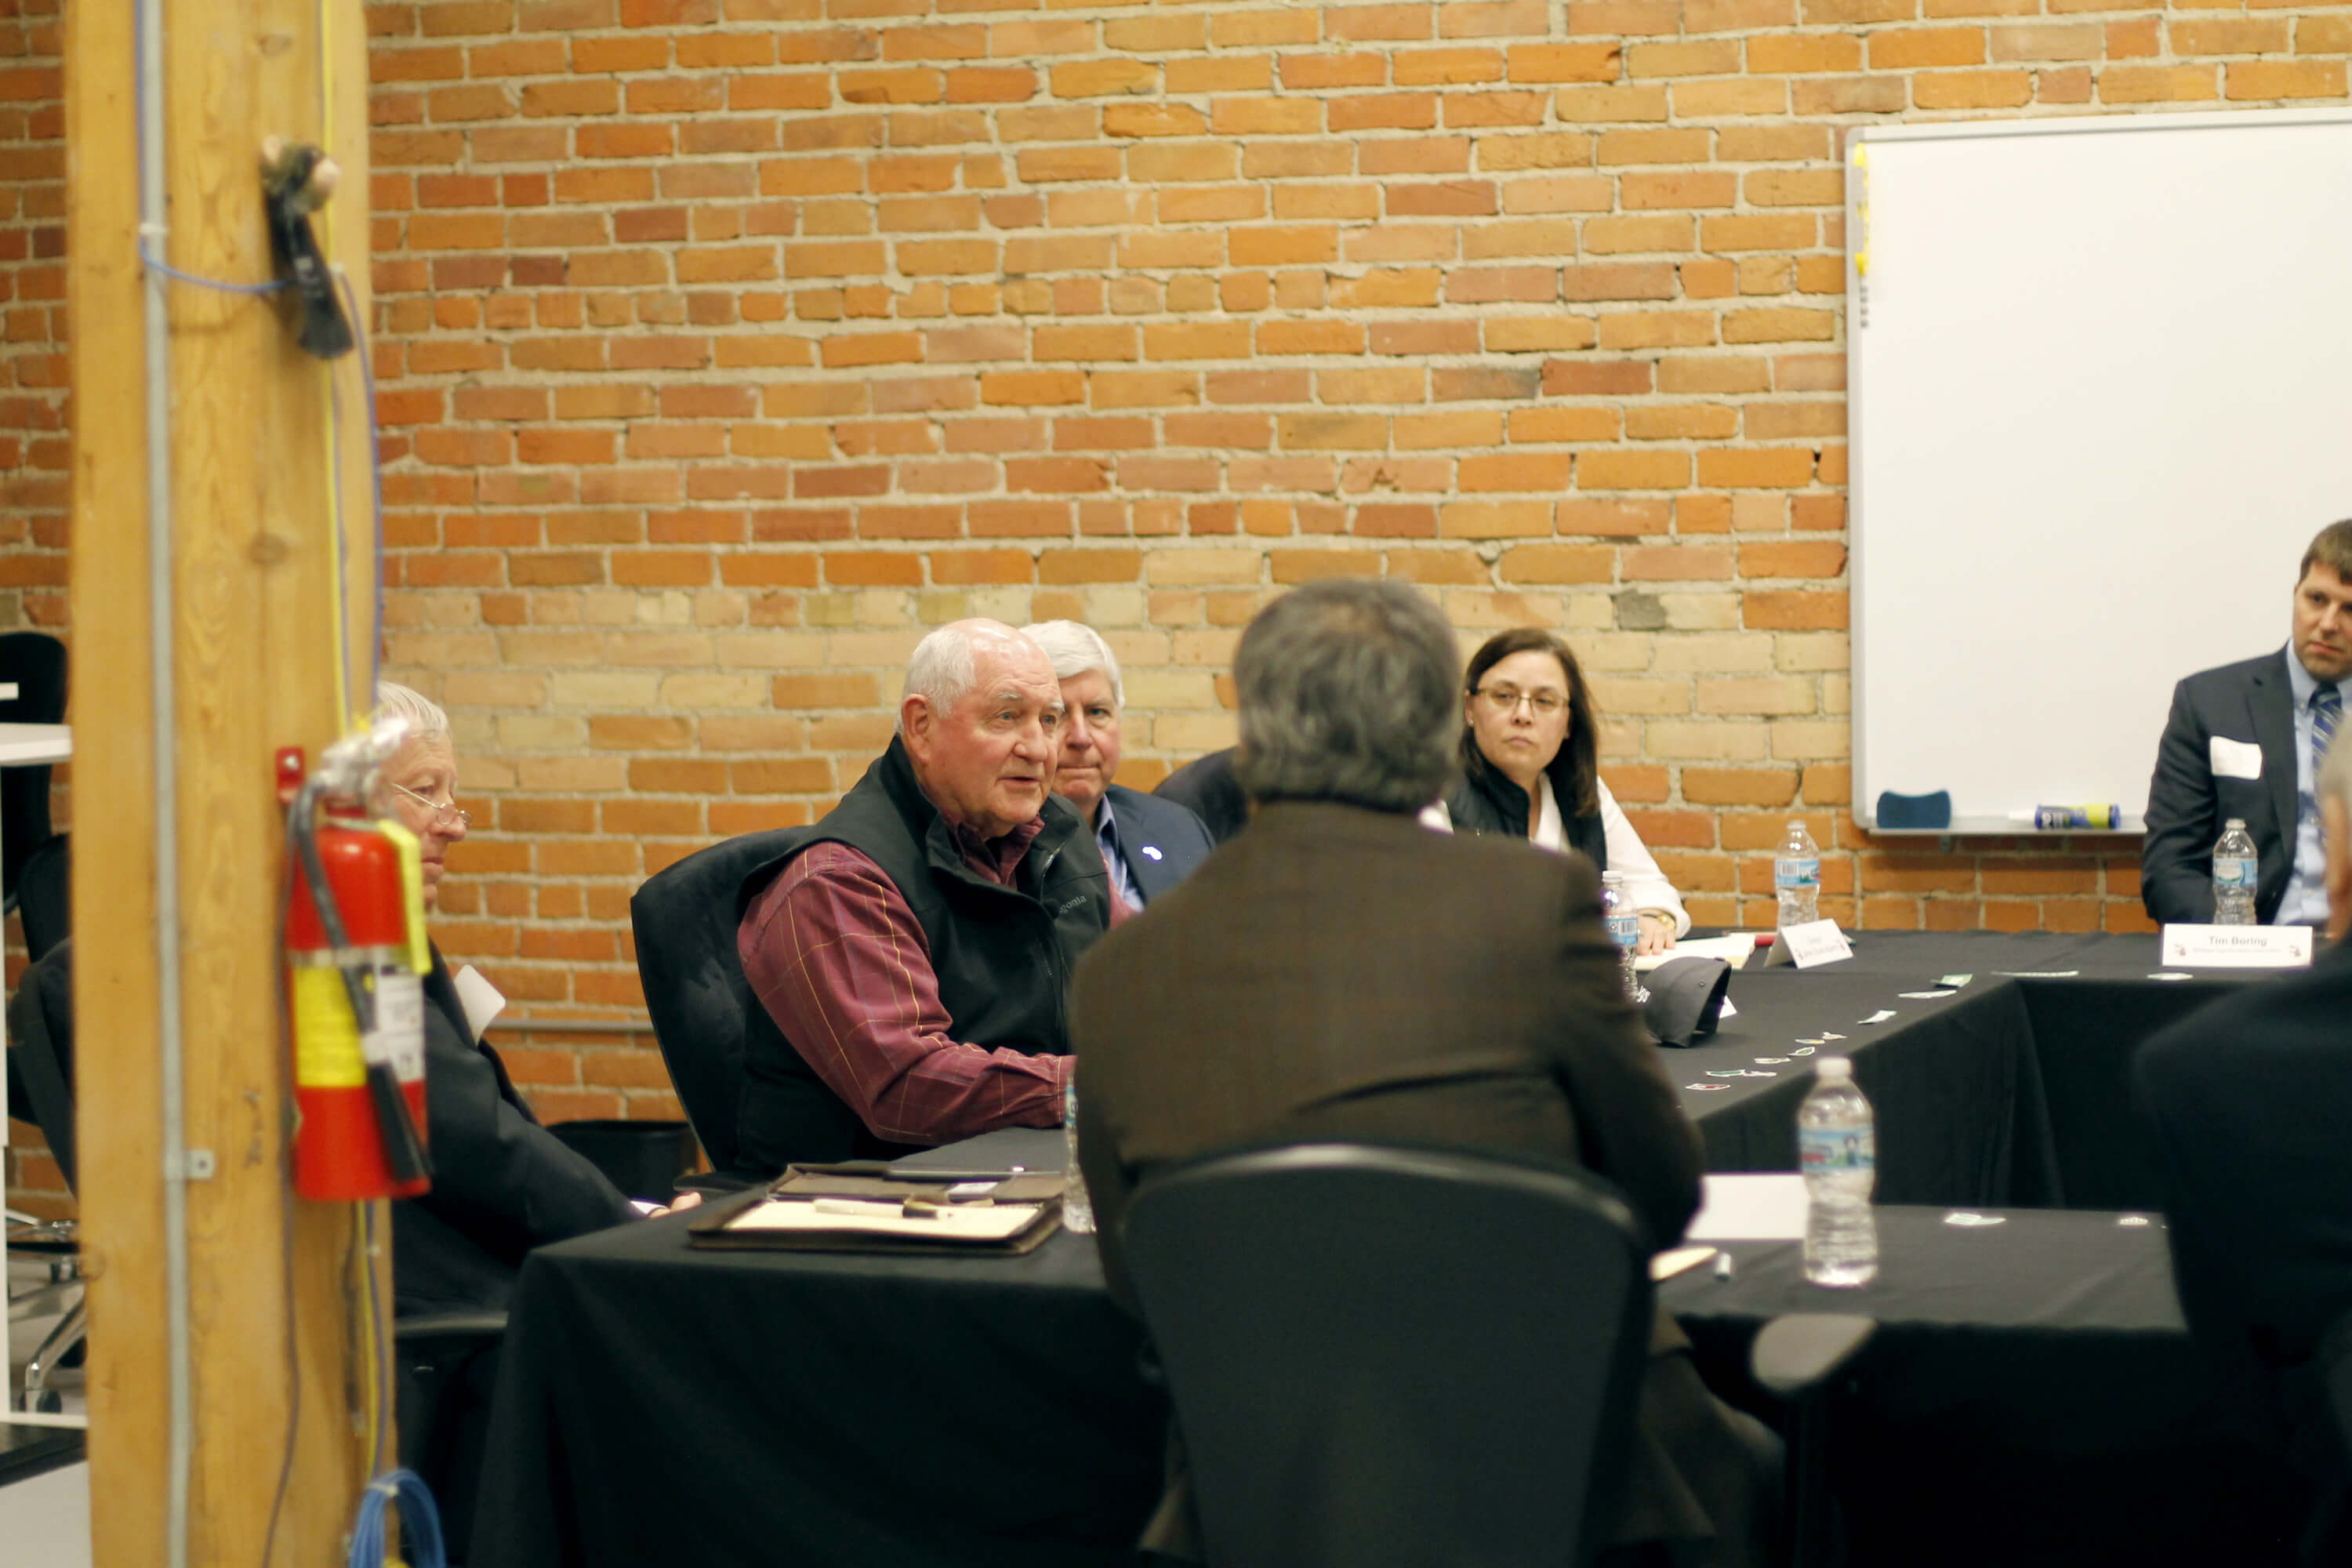 Sonny Perdue during the roundtable